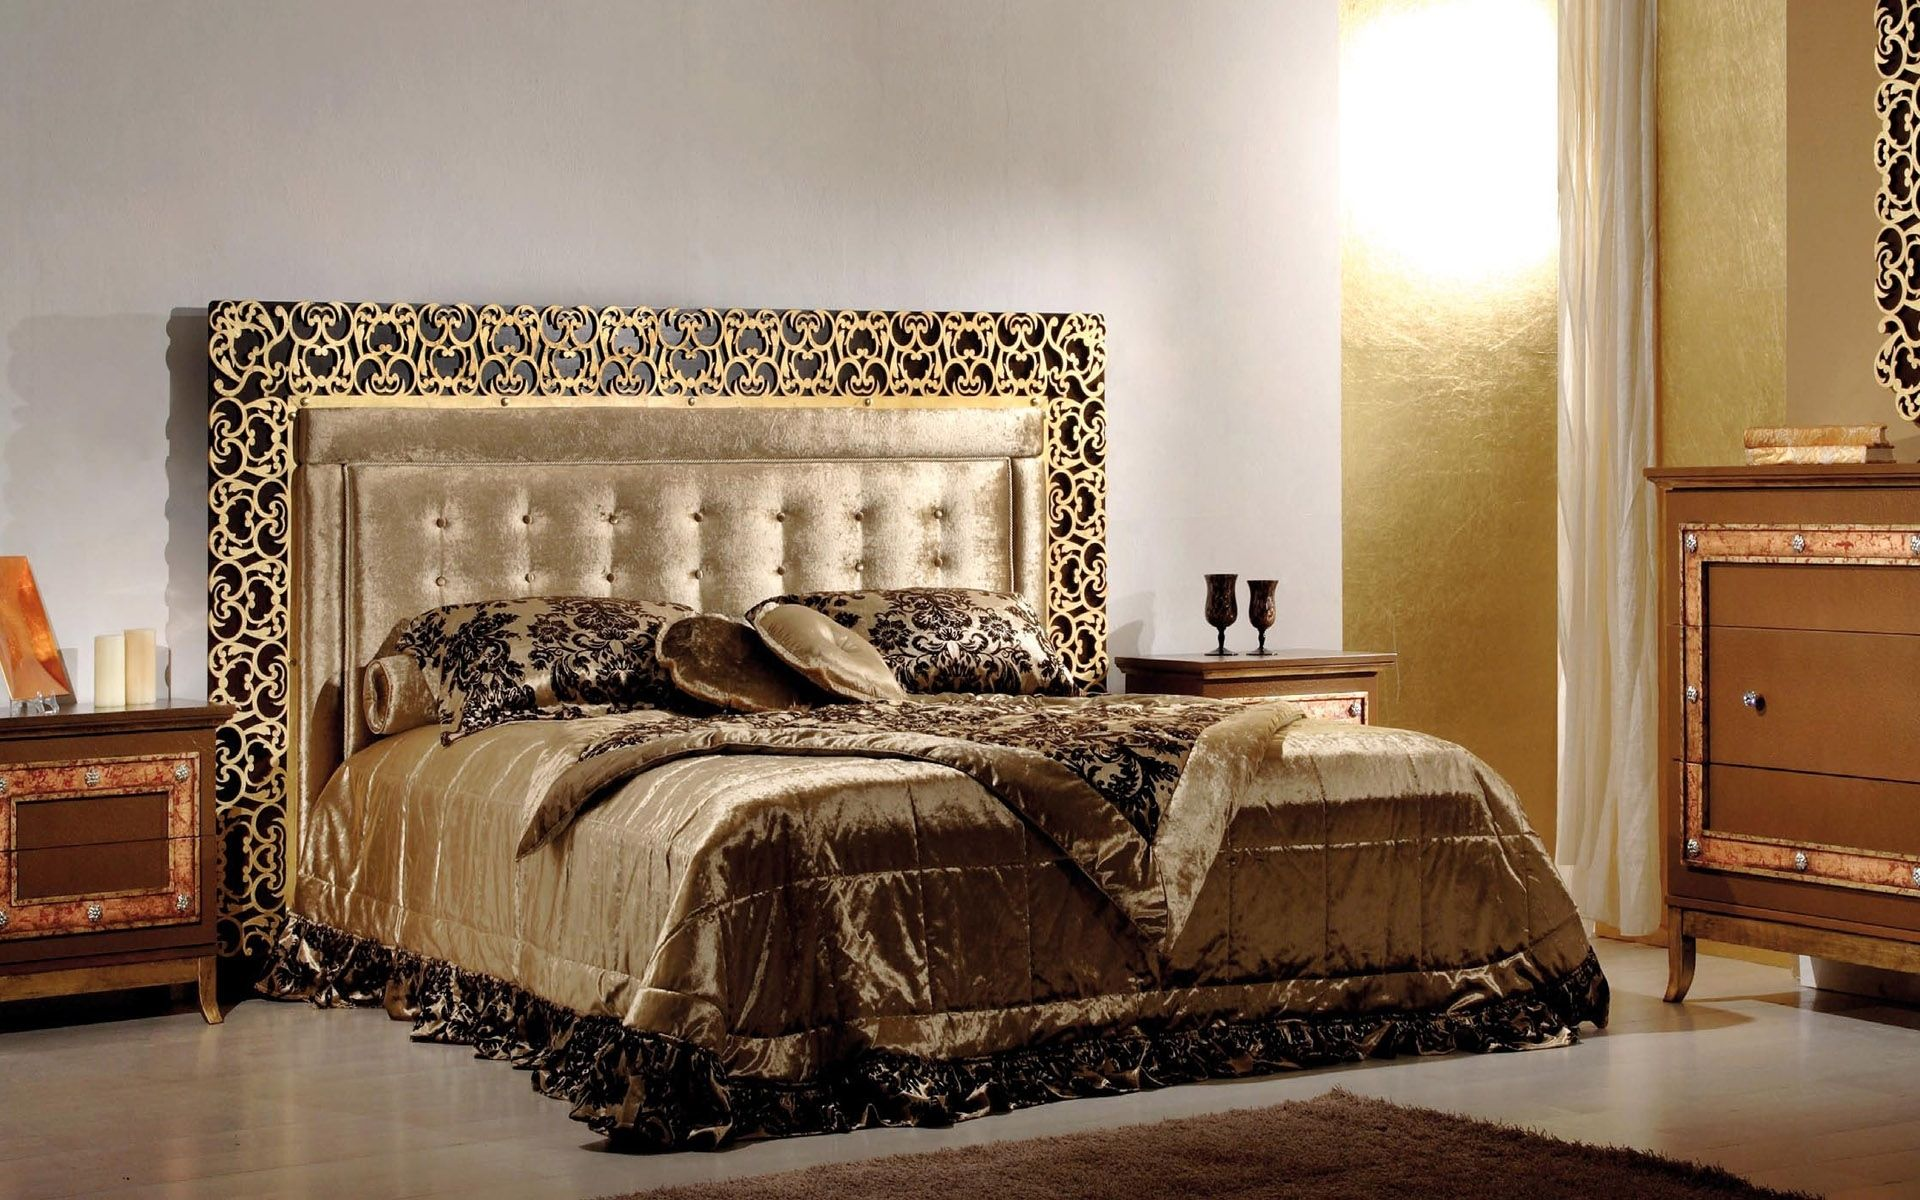 Bedroom Decoration Antique Gold Tufted Headboards On Master Bedding As Well As Brown Bedroom Ru Luxury Bedroom Furniture Luxurious Bedrooms Luxury Bedroom Sets